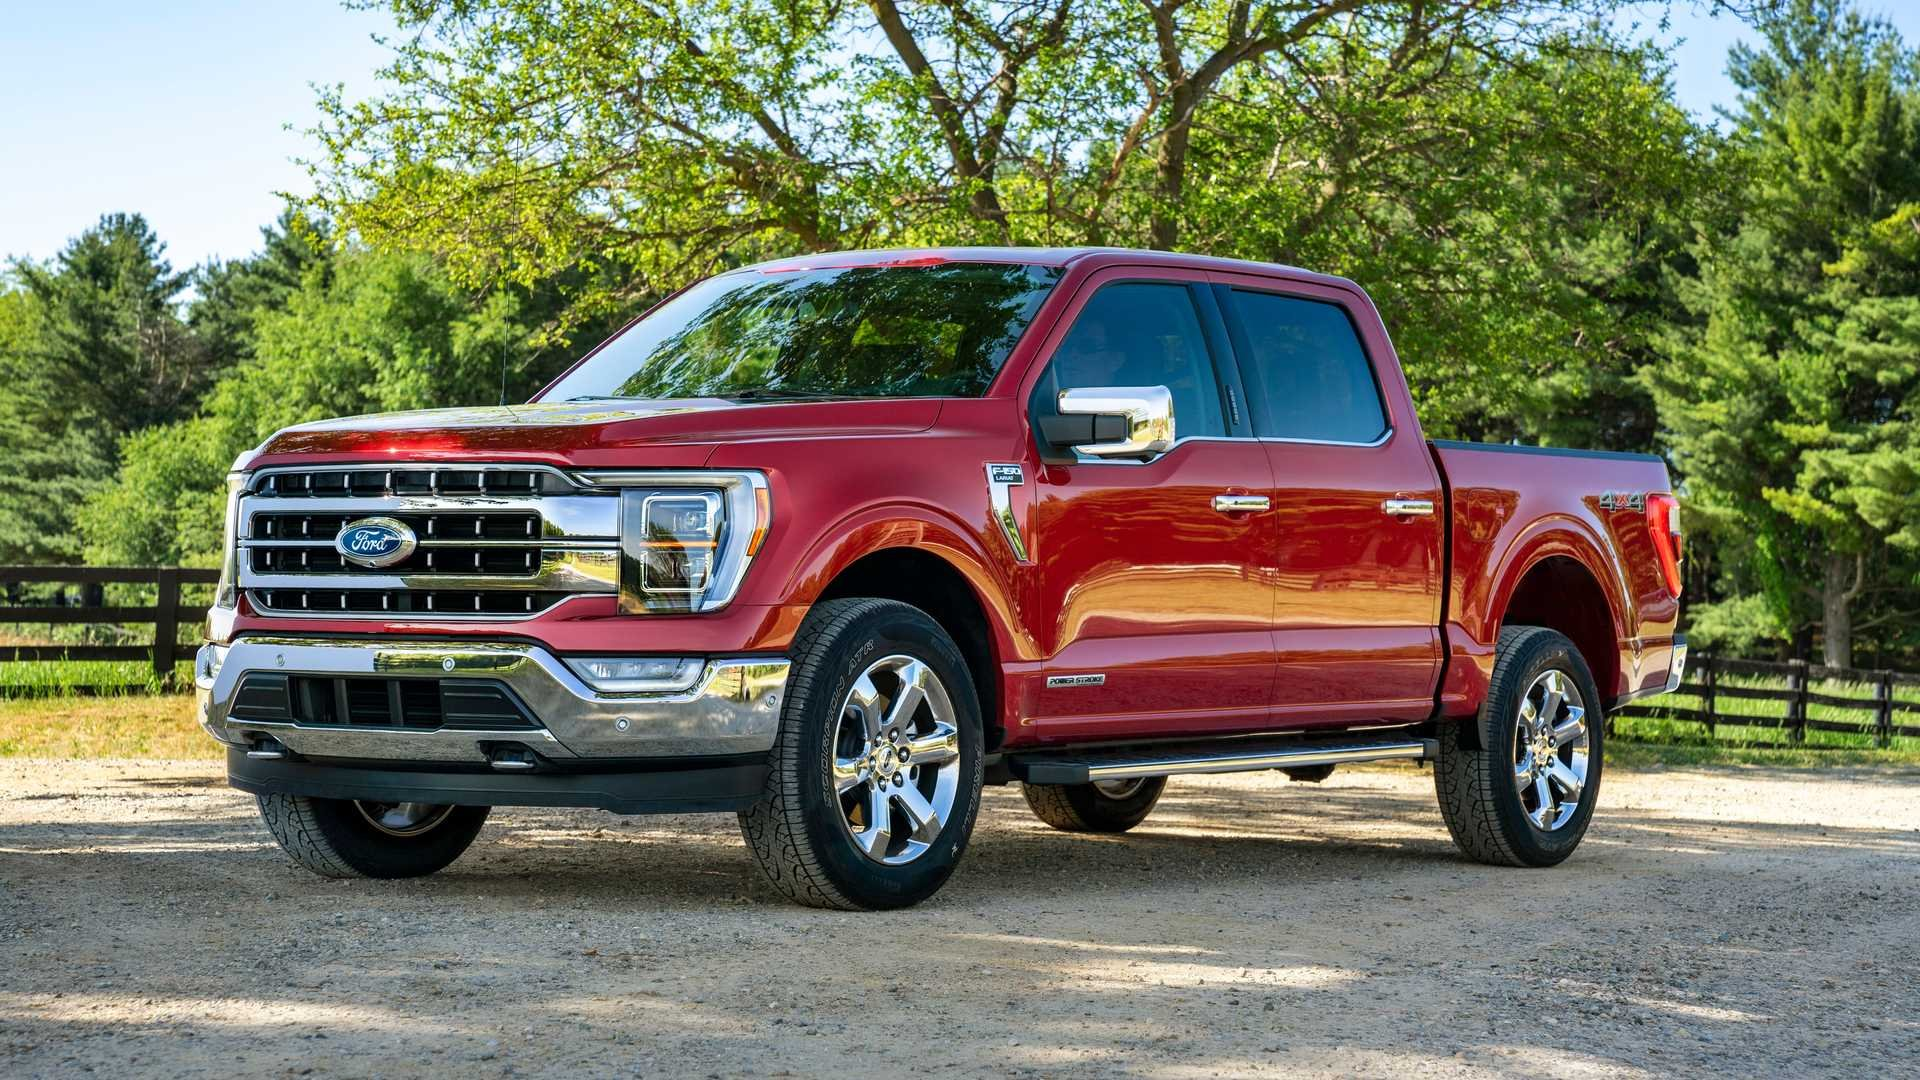 2021 Ford F-150 Engines Detailed: Hybrid Rated At 430 HP And 570 LB-FT